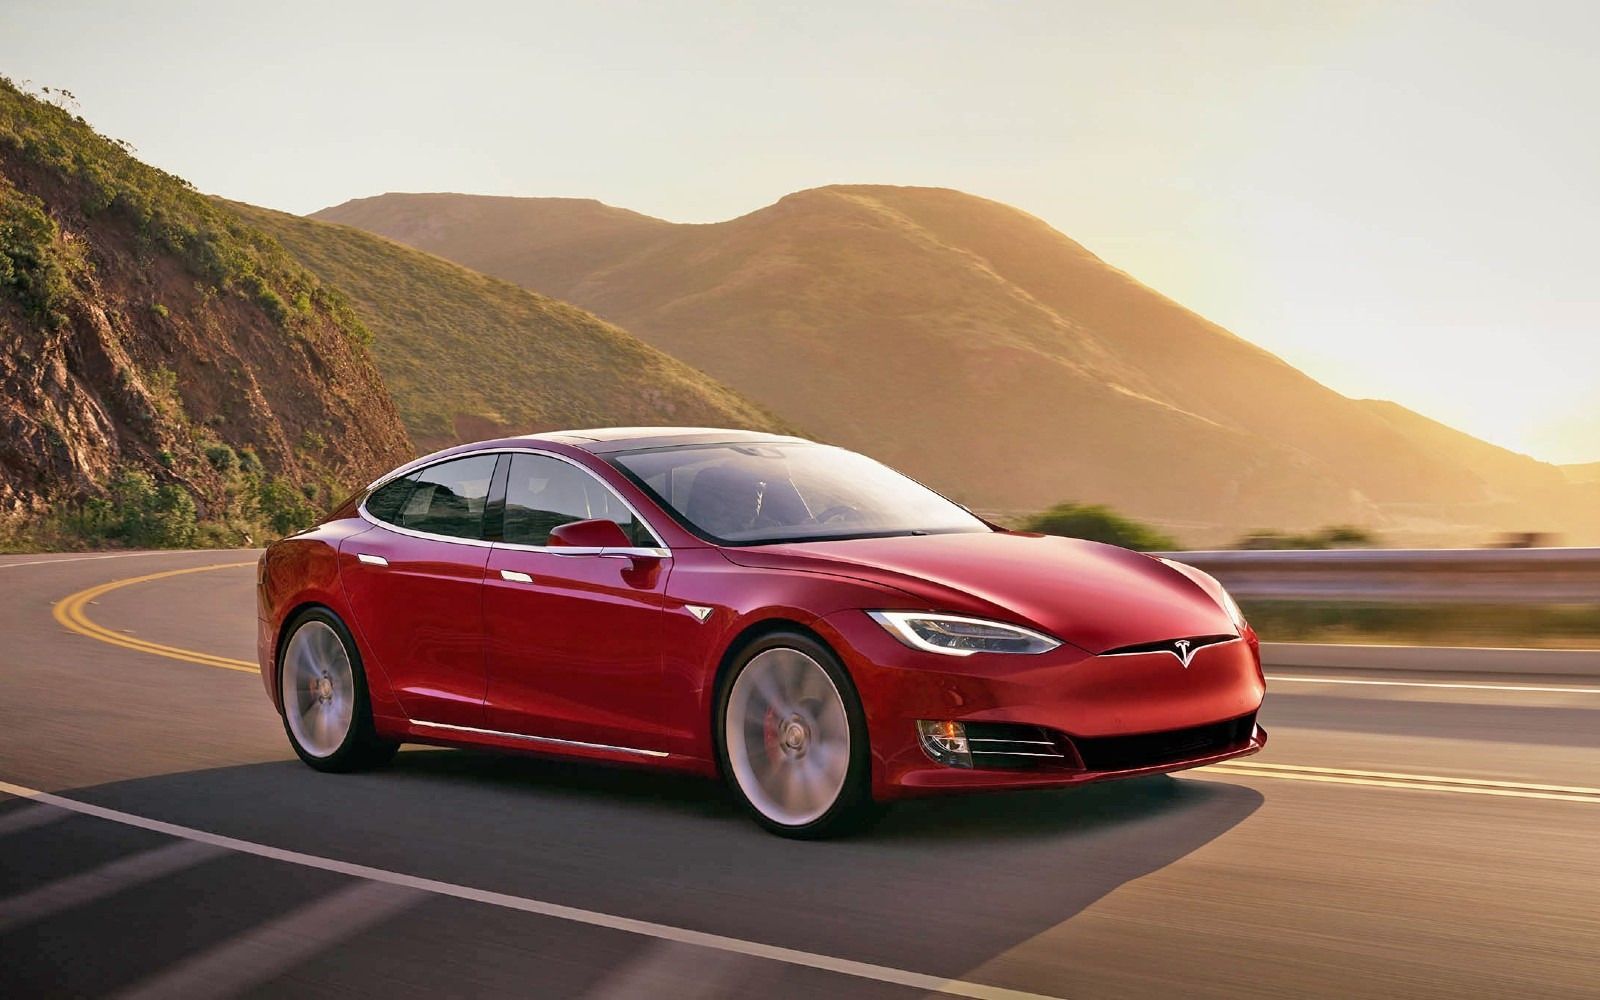 Canadian police charged a Tesla owner for sleeping while driving | DeviceDaily.com